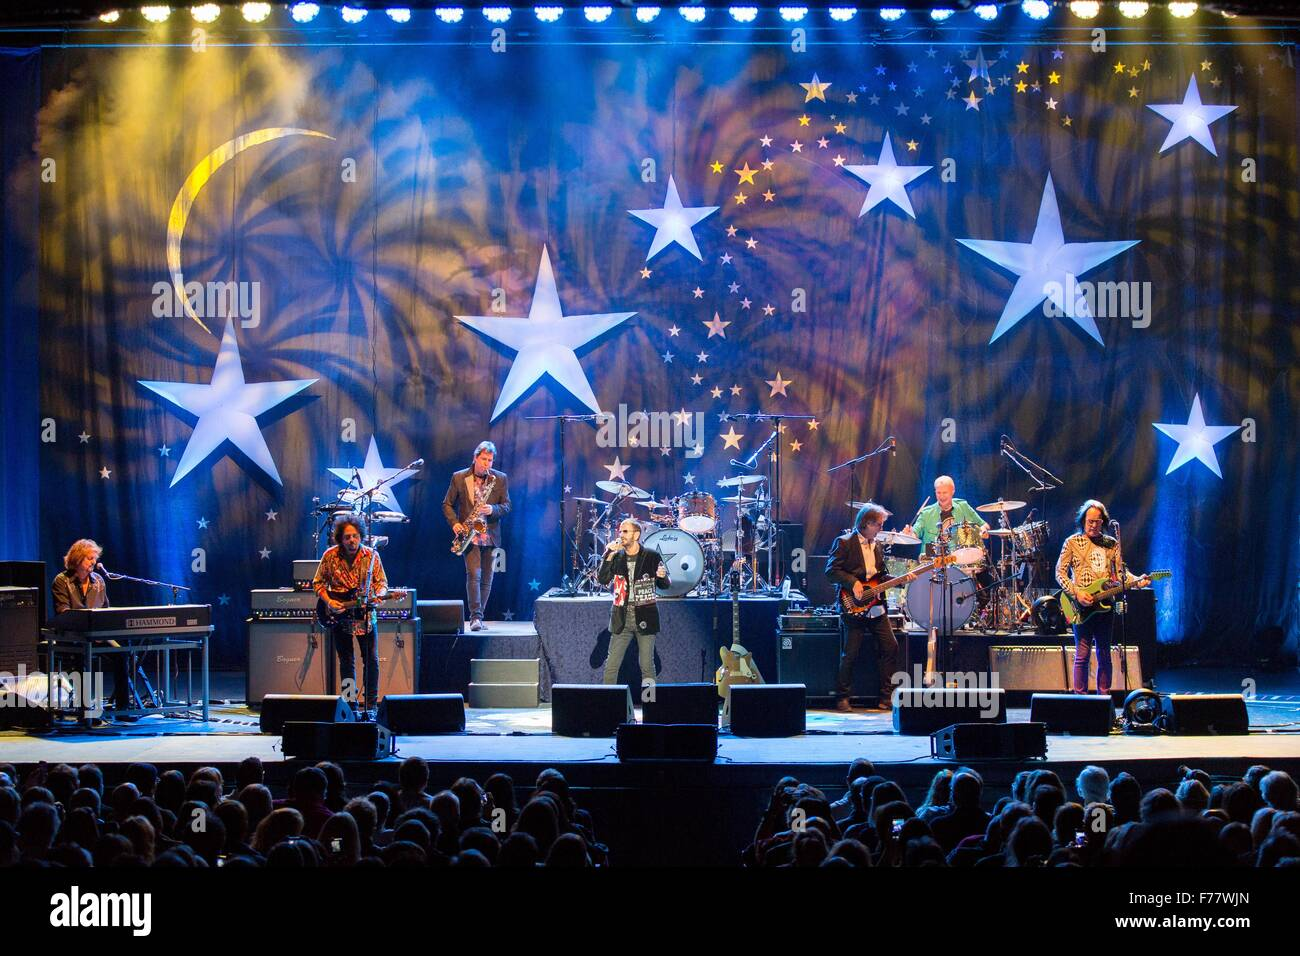 Milwaukee, Wisconsin, USA. 17th Oct, 2015. Musician RINGO STARR performs live with his All-Starr Band at the Riverside - Stock Image